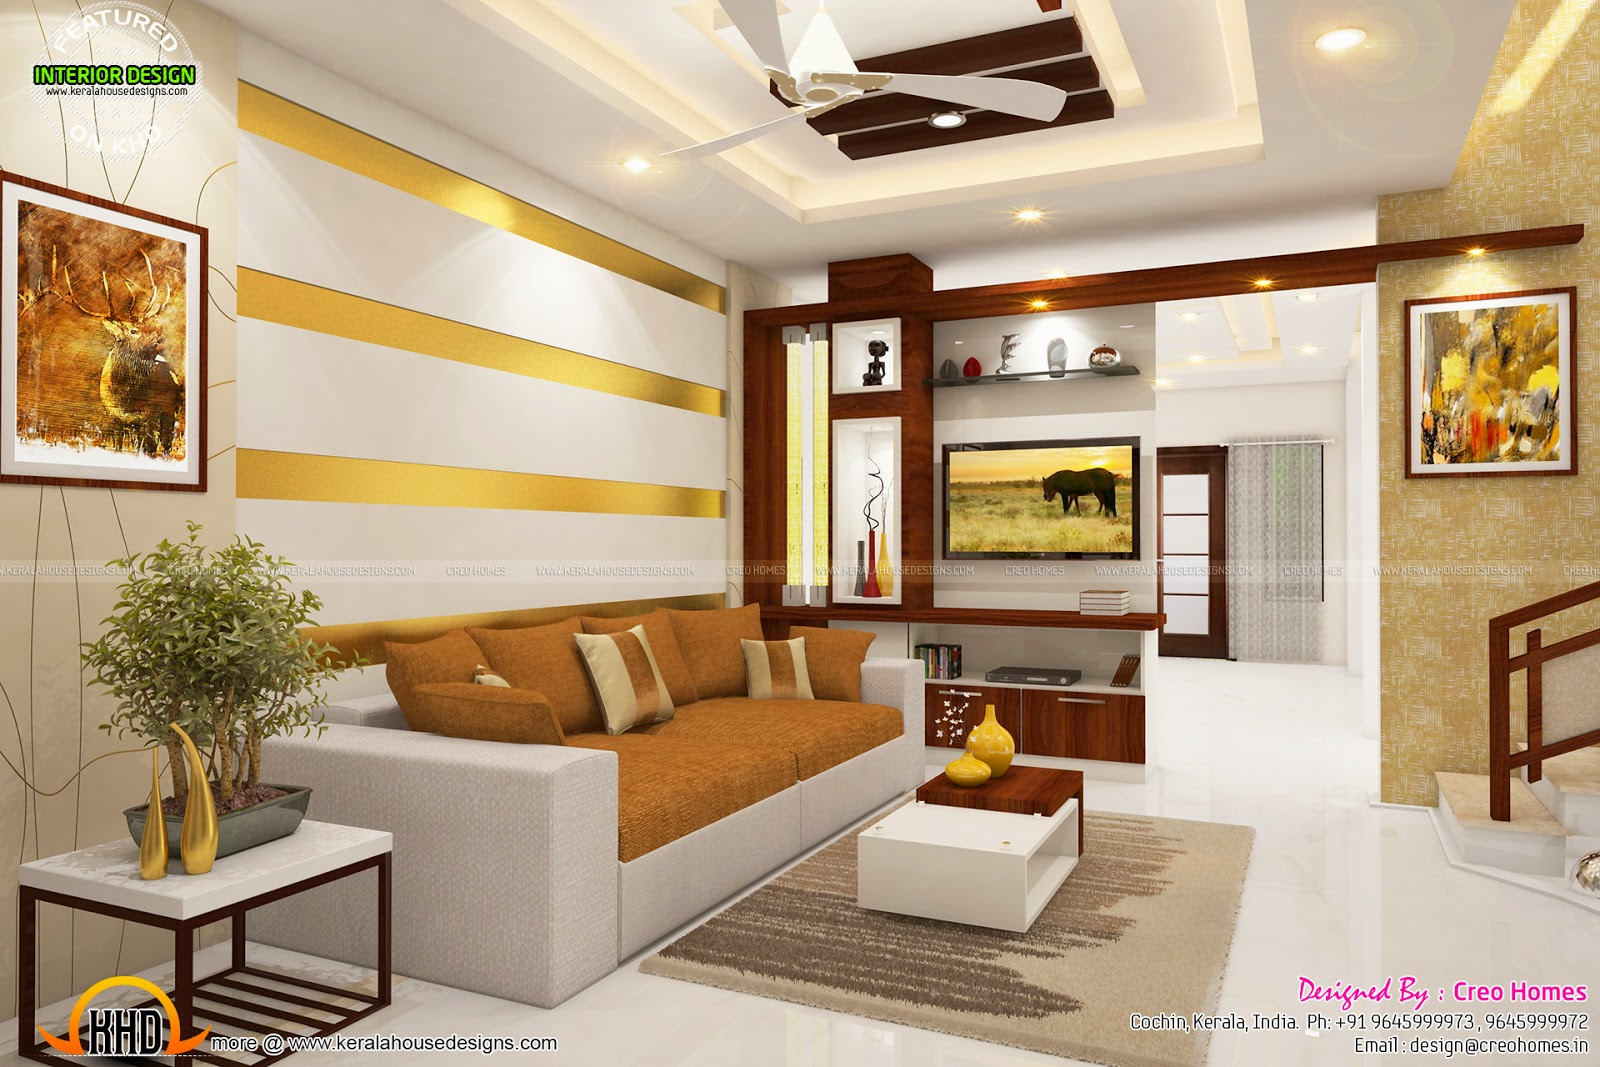 Total home interior solutions by creo homes kerala home for Online house interior design